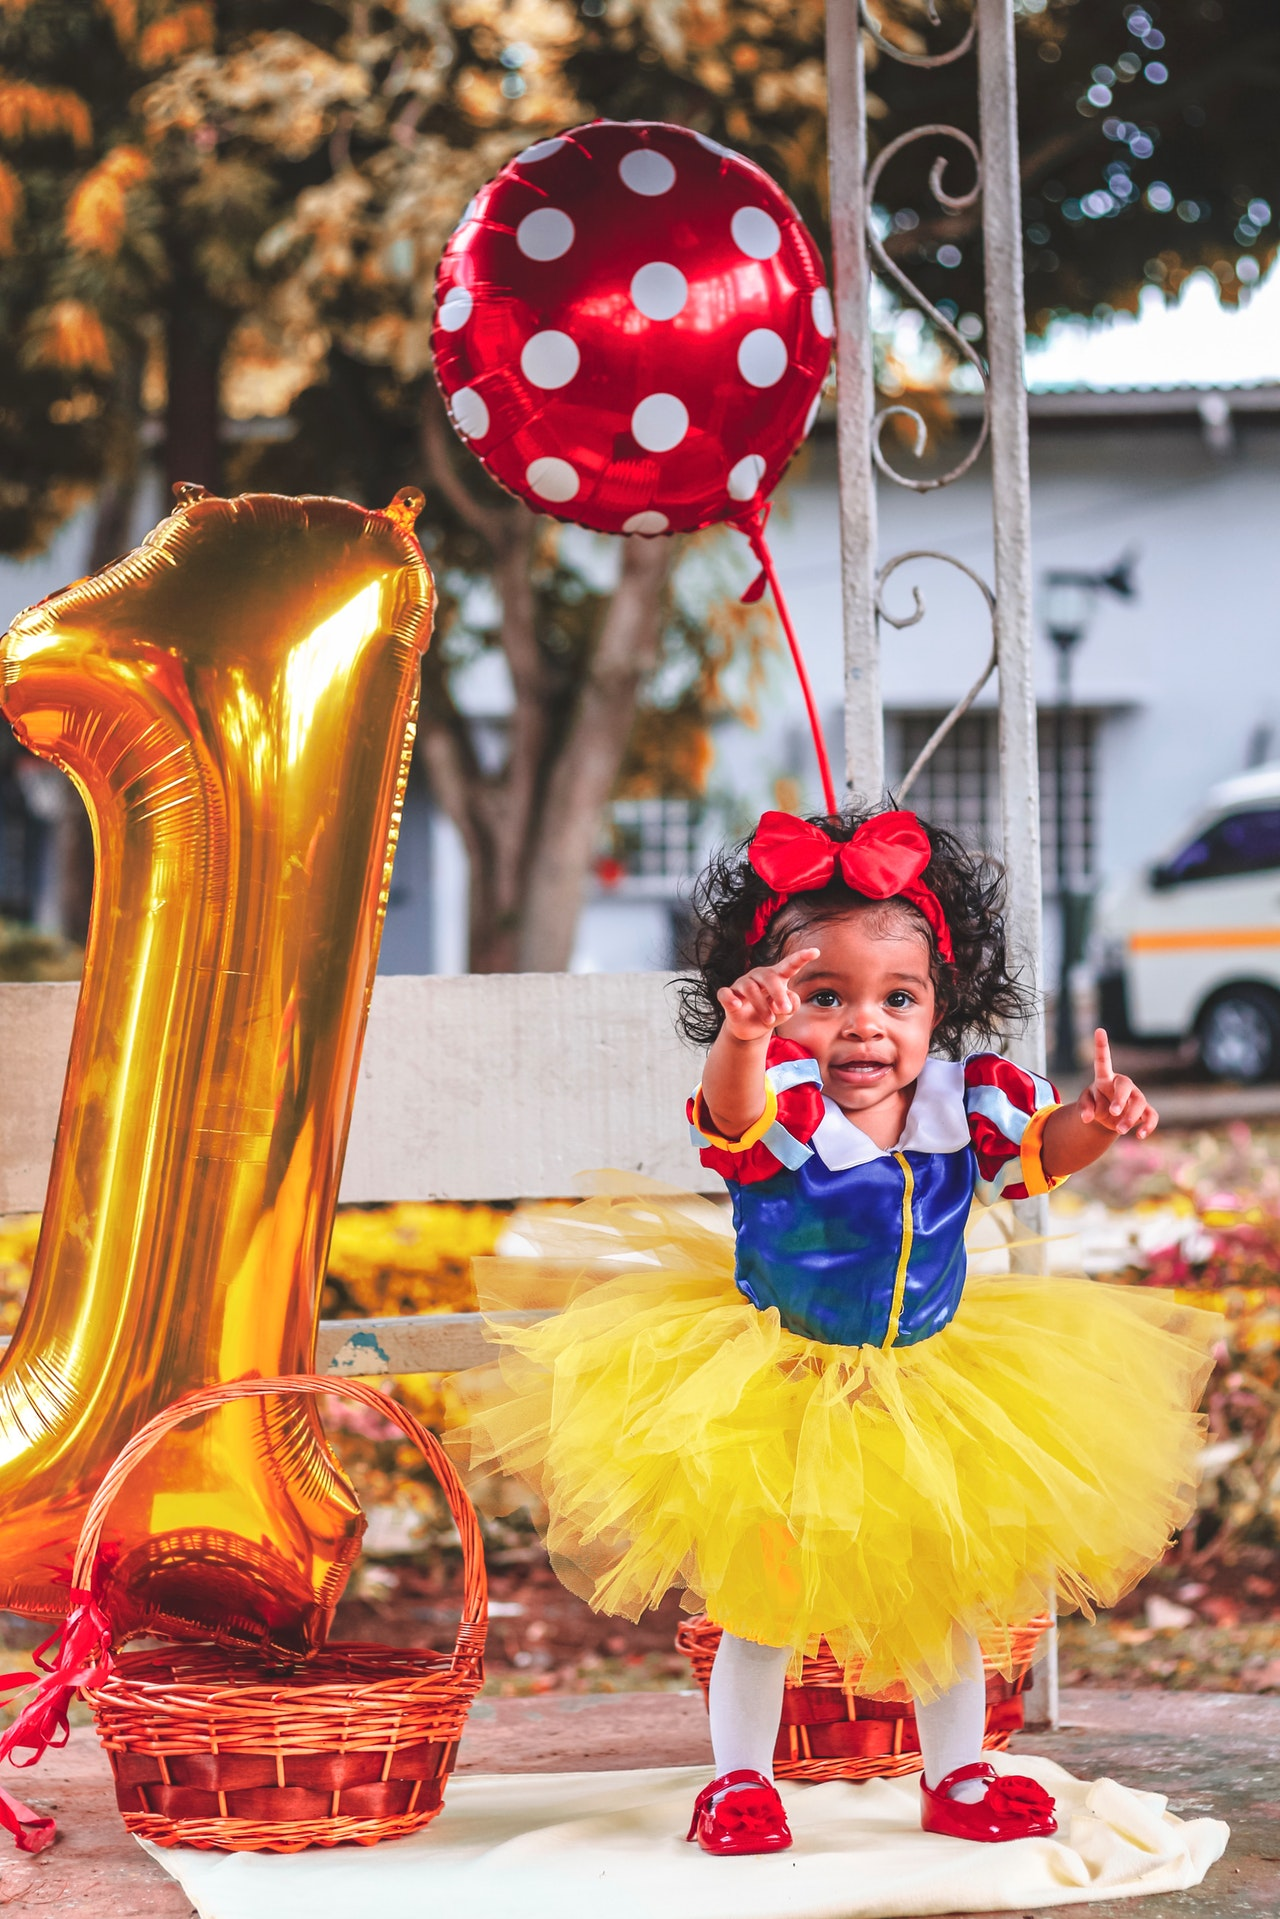 6 Ways to Make Your Child's Birthday Memorable